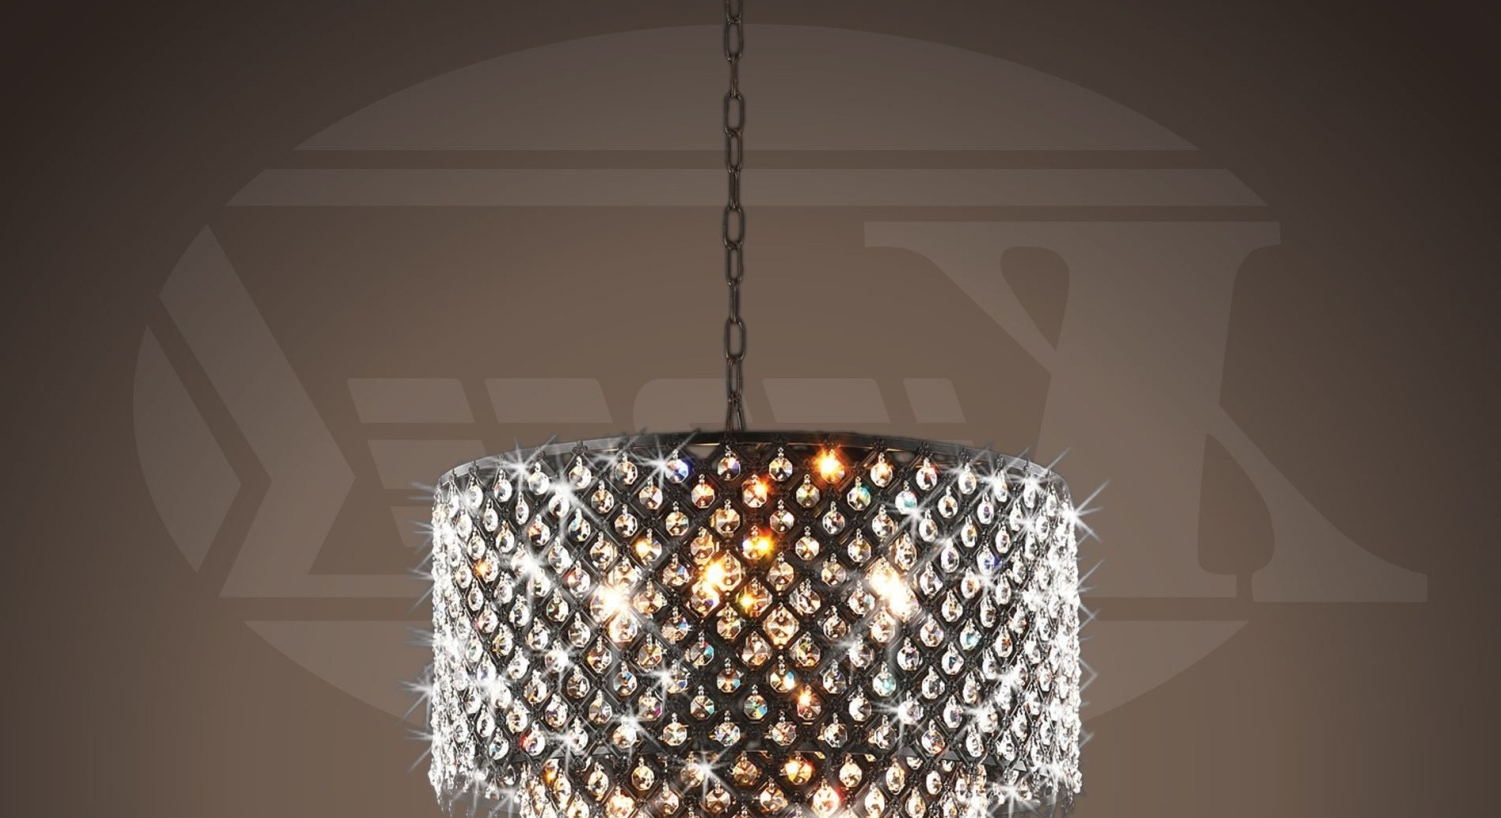 Widely Used Metal Ball Chandeliers For Chandelier : Beautiful Metal Ball Candle Chandeliers Chandeliers (View 20 of 20)